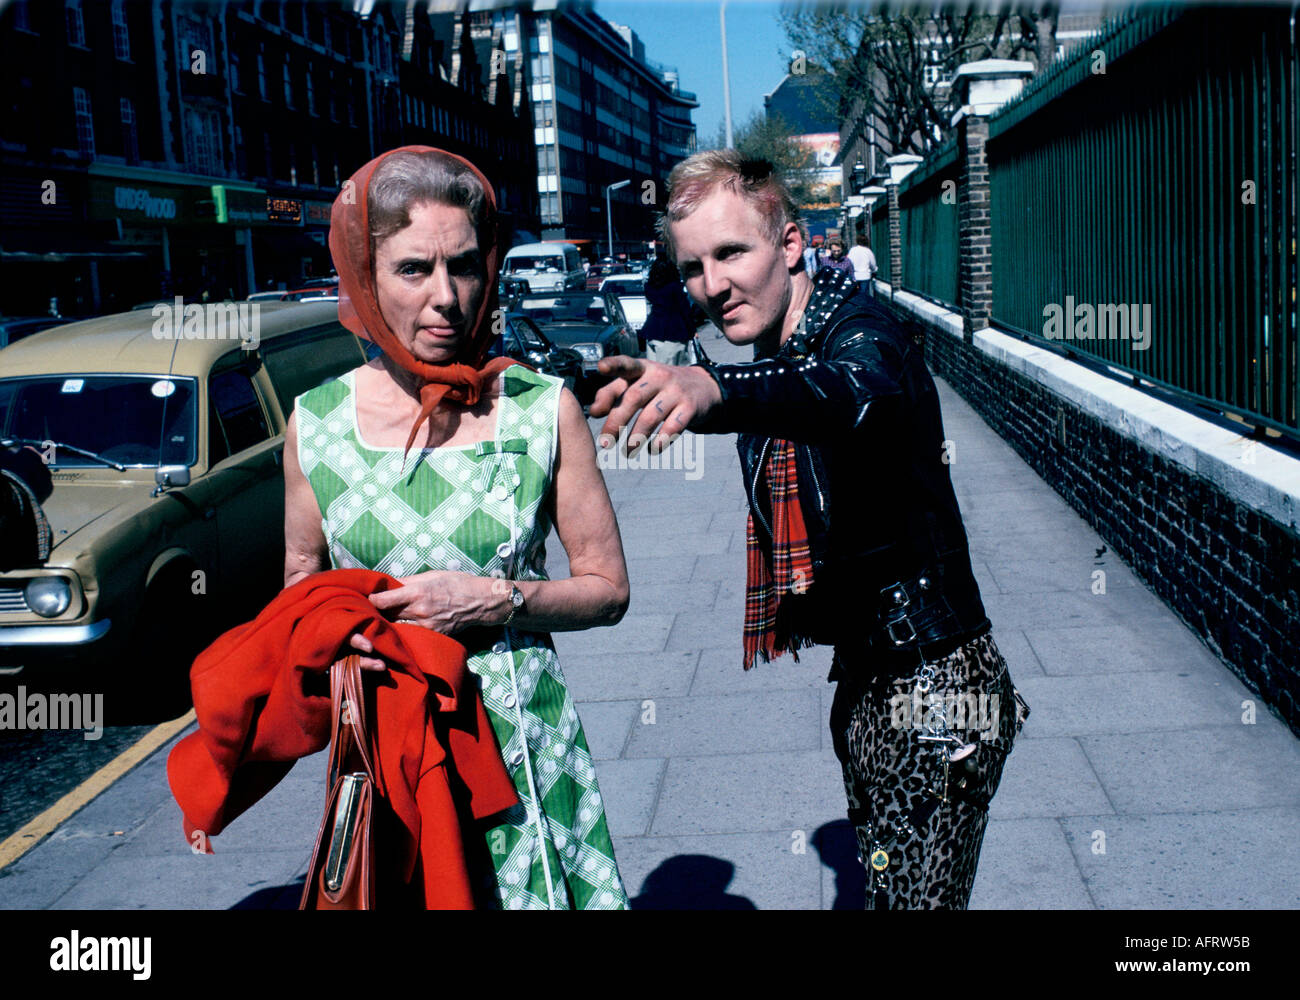 Punk helping passer by on Kings road Chelsea London  woman sticking tongue out at photographer 1970s Uk 1979 HOMER Stock Photo